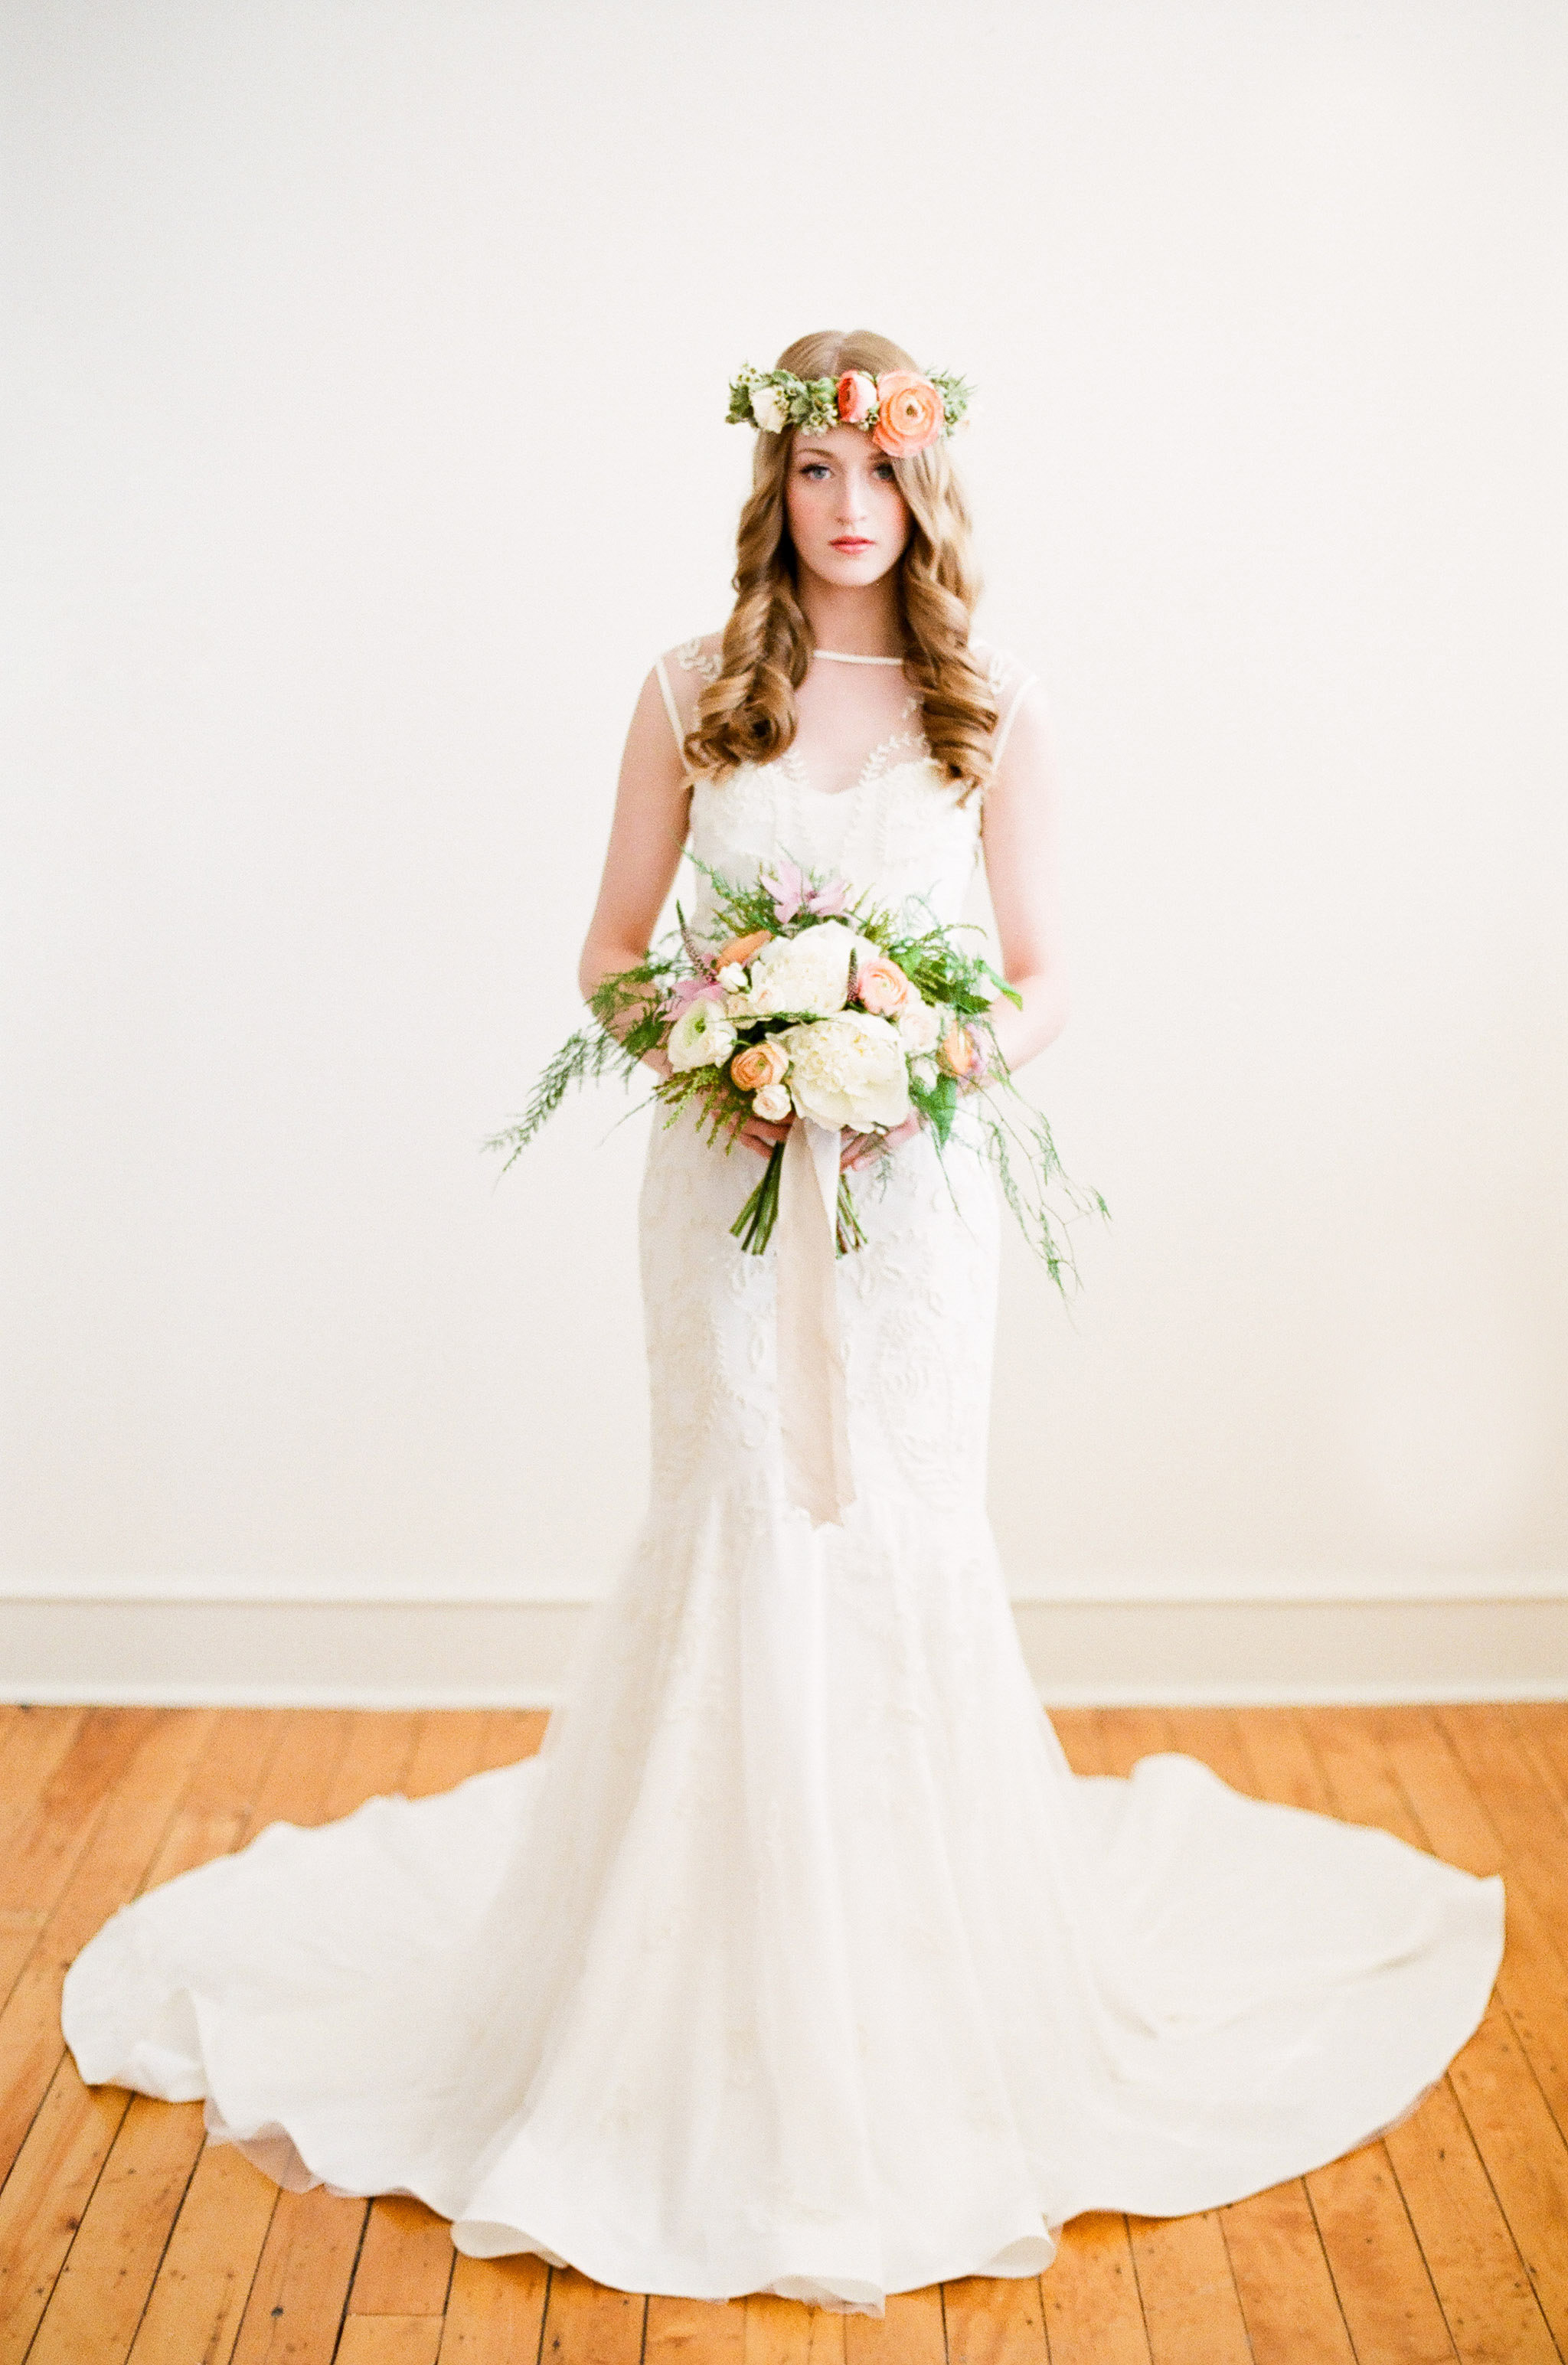 View More: http://rutheileenphotography.pass.us/etheralshoot